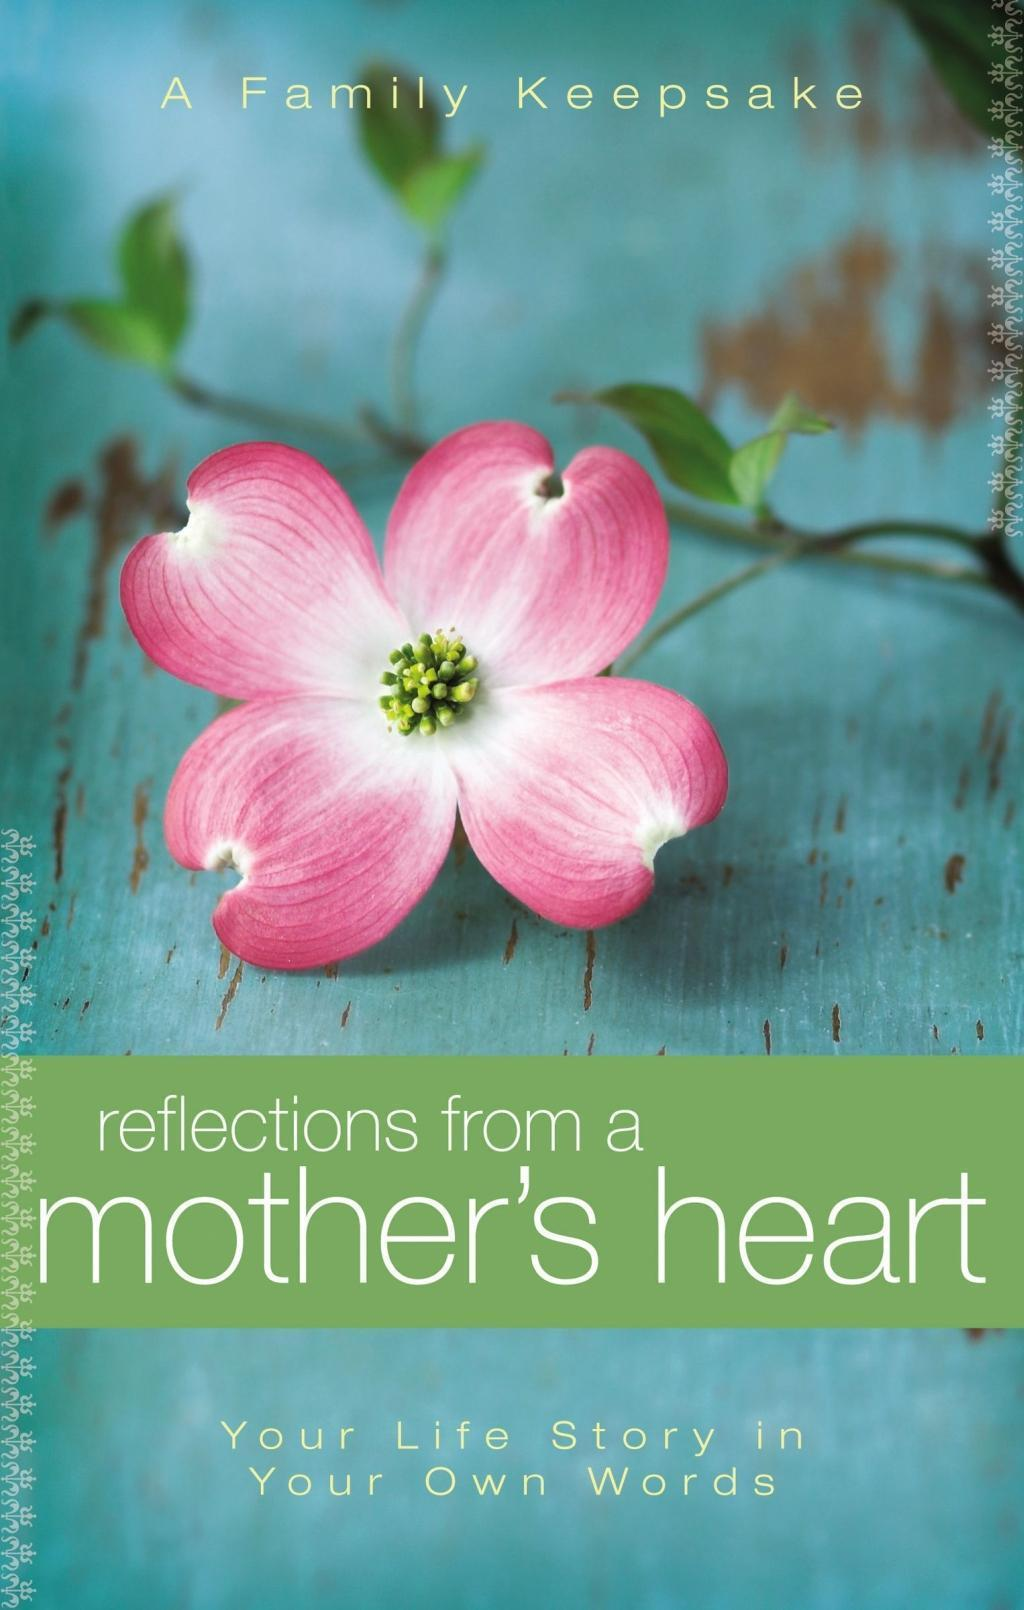 Reflections From a Mother's Heart